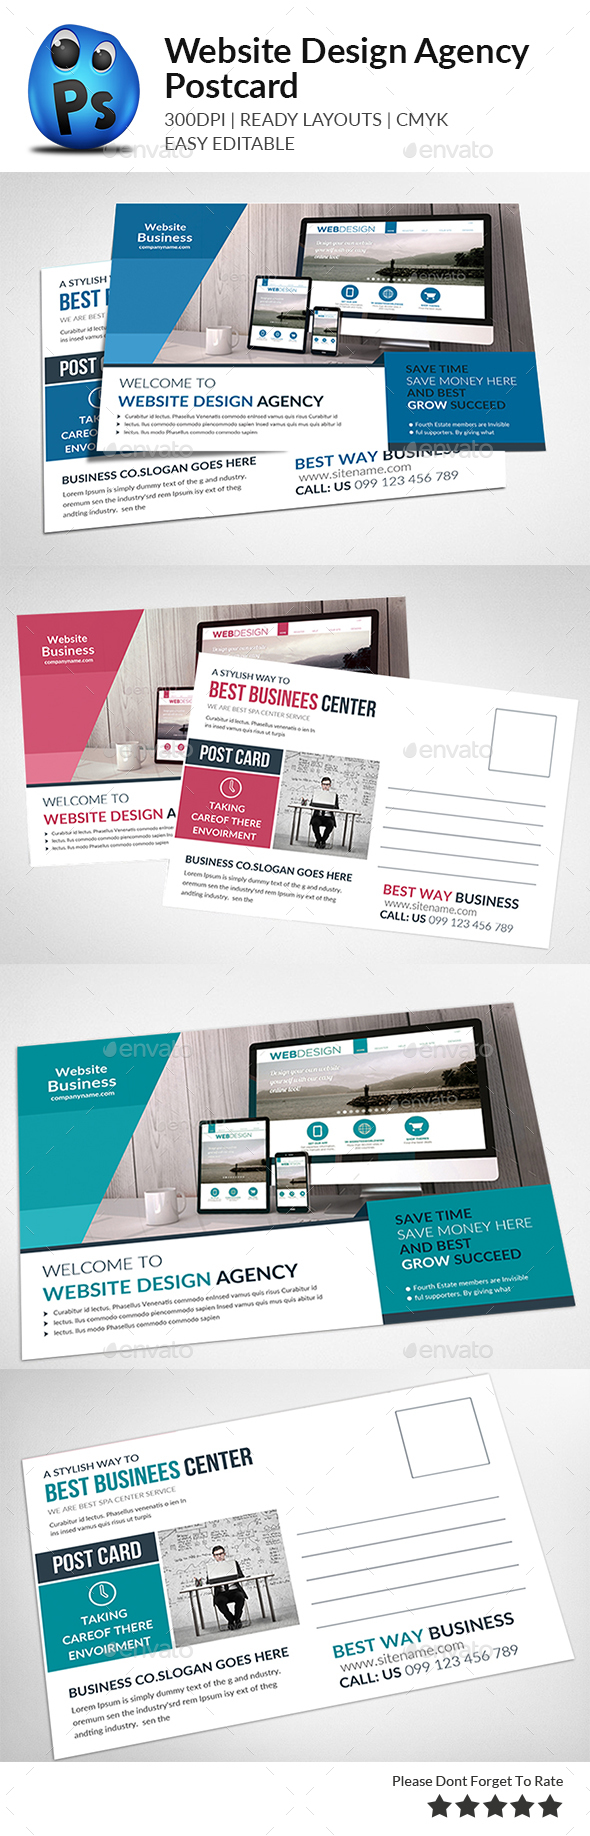 Website Design Agency Postcards - Cards & Invites Print Templates